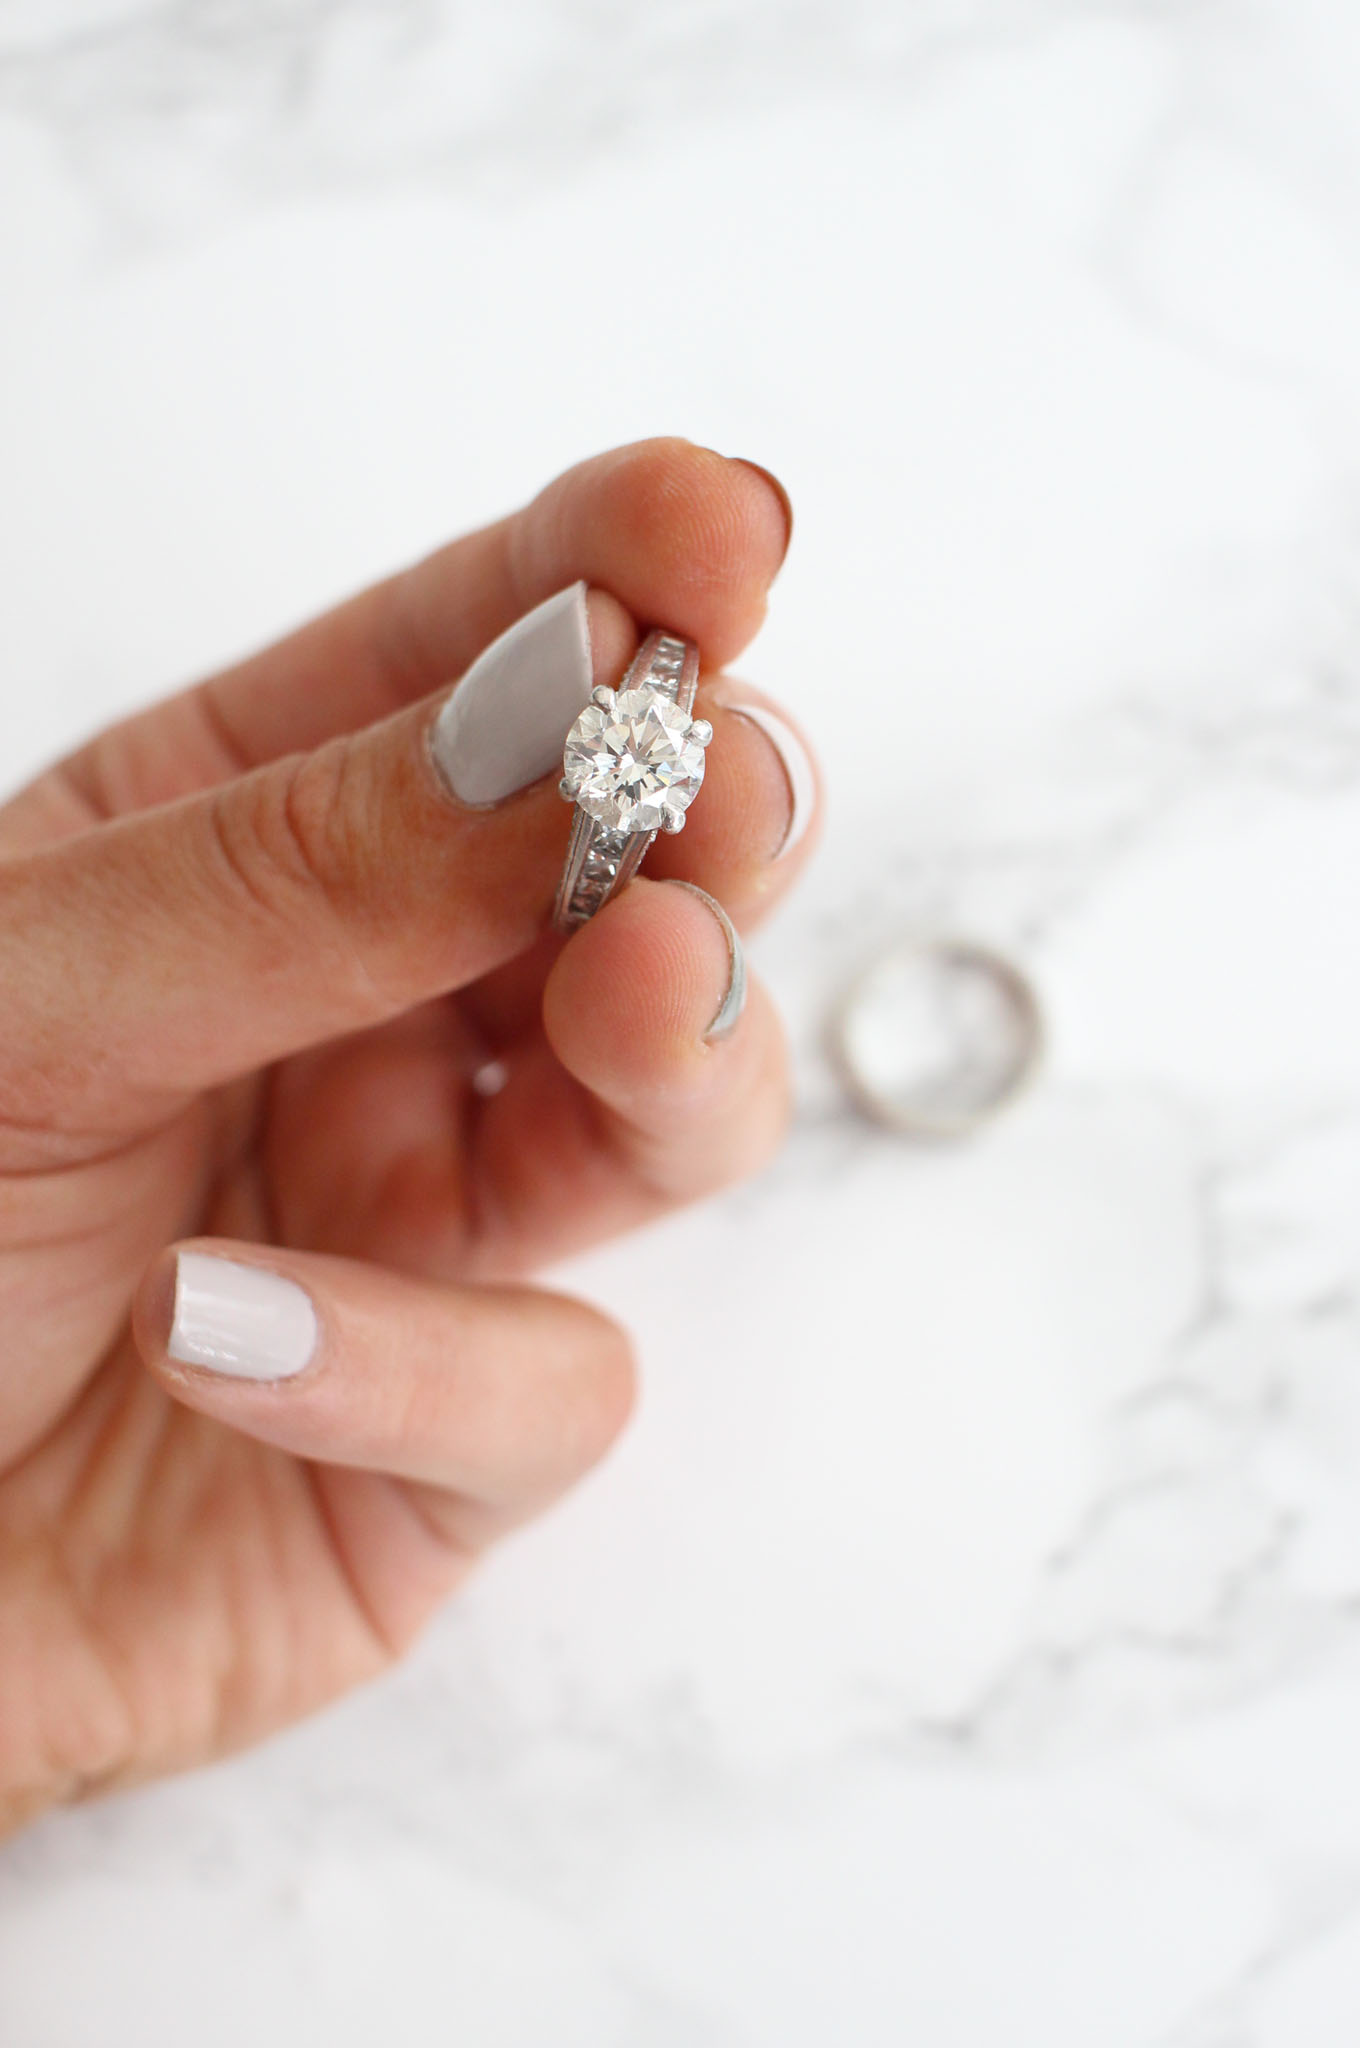 Lifestyle blogger Roxanne of Glass of Glam's tips for keeping your jewelry safe while traveling with Jeweler's Mutual